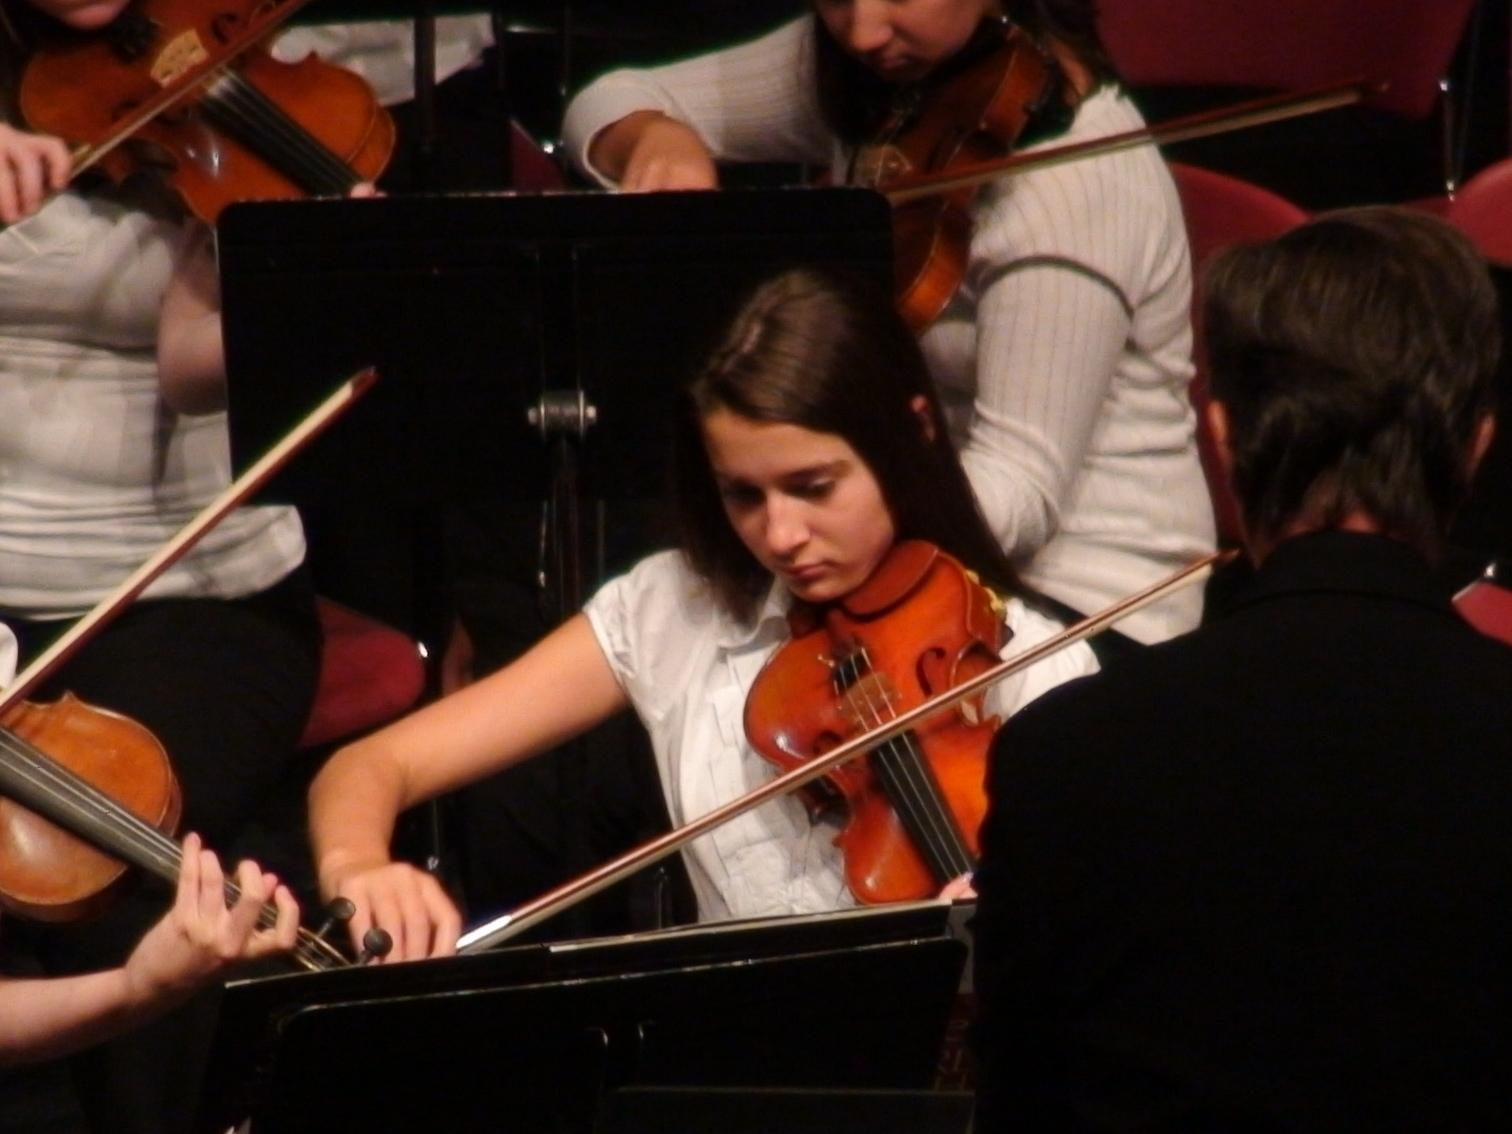 A female violinist in an orchestra.